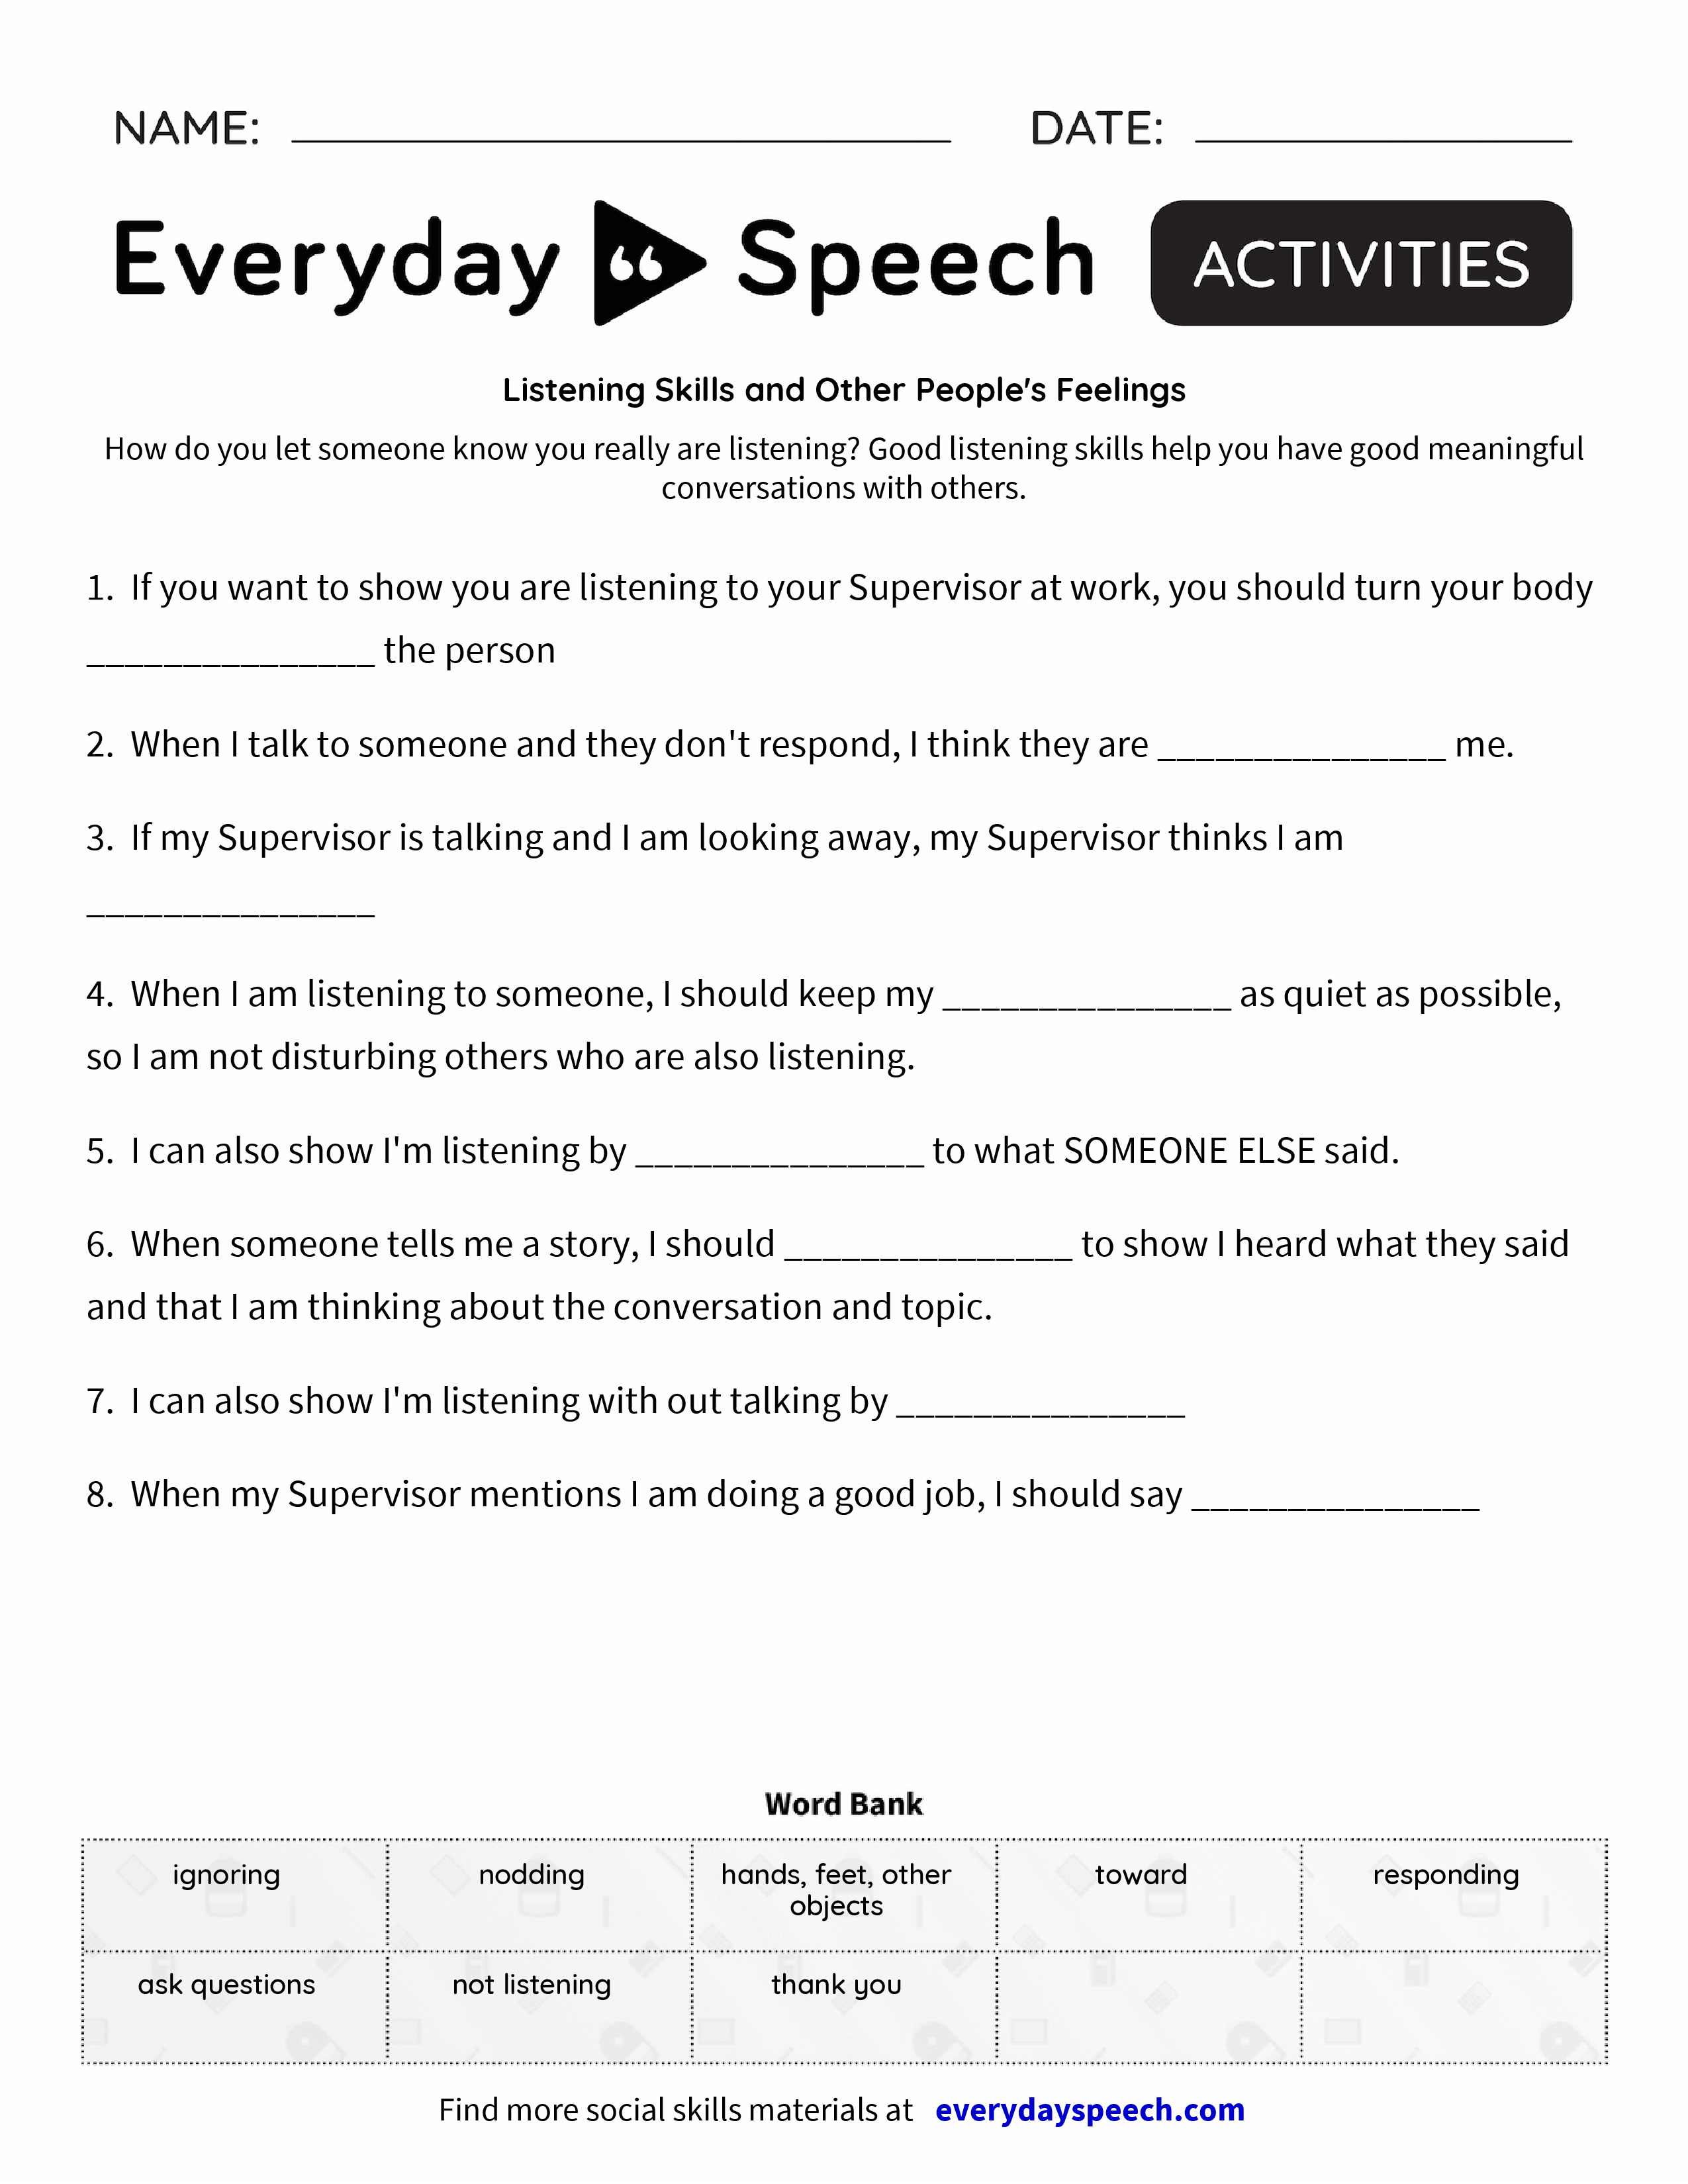 Worksheets Listening Skills Worksheets listening skills and other peoples feelings everyday speech preview